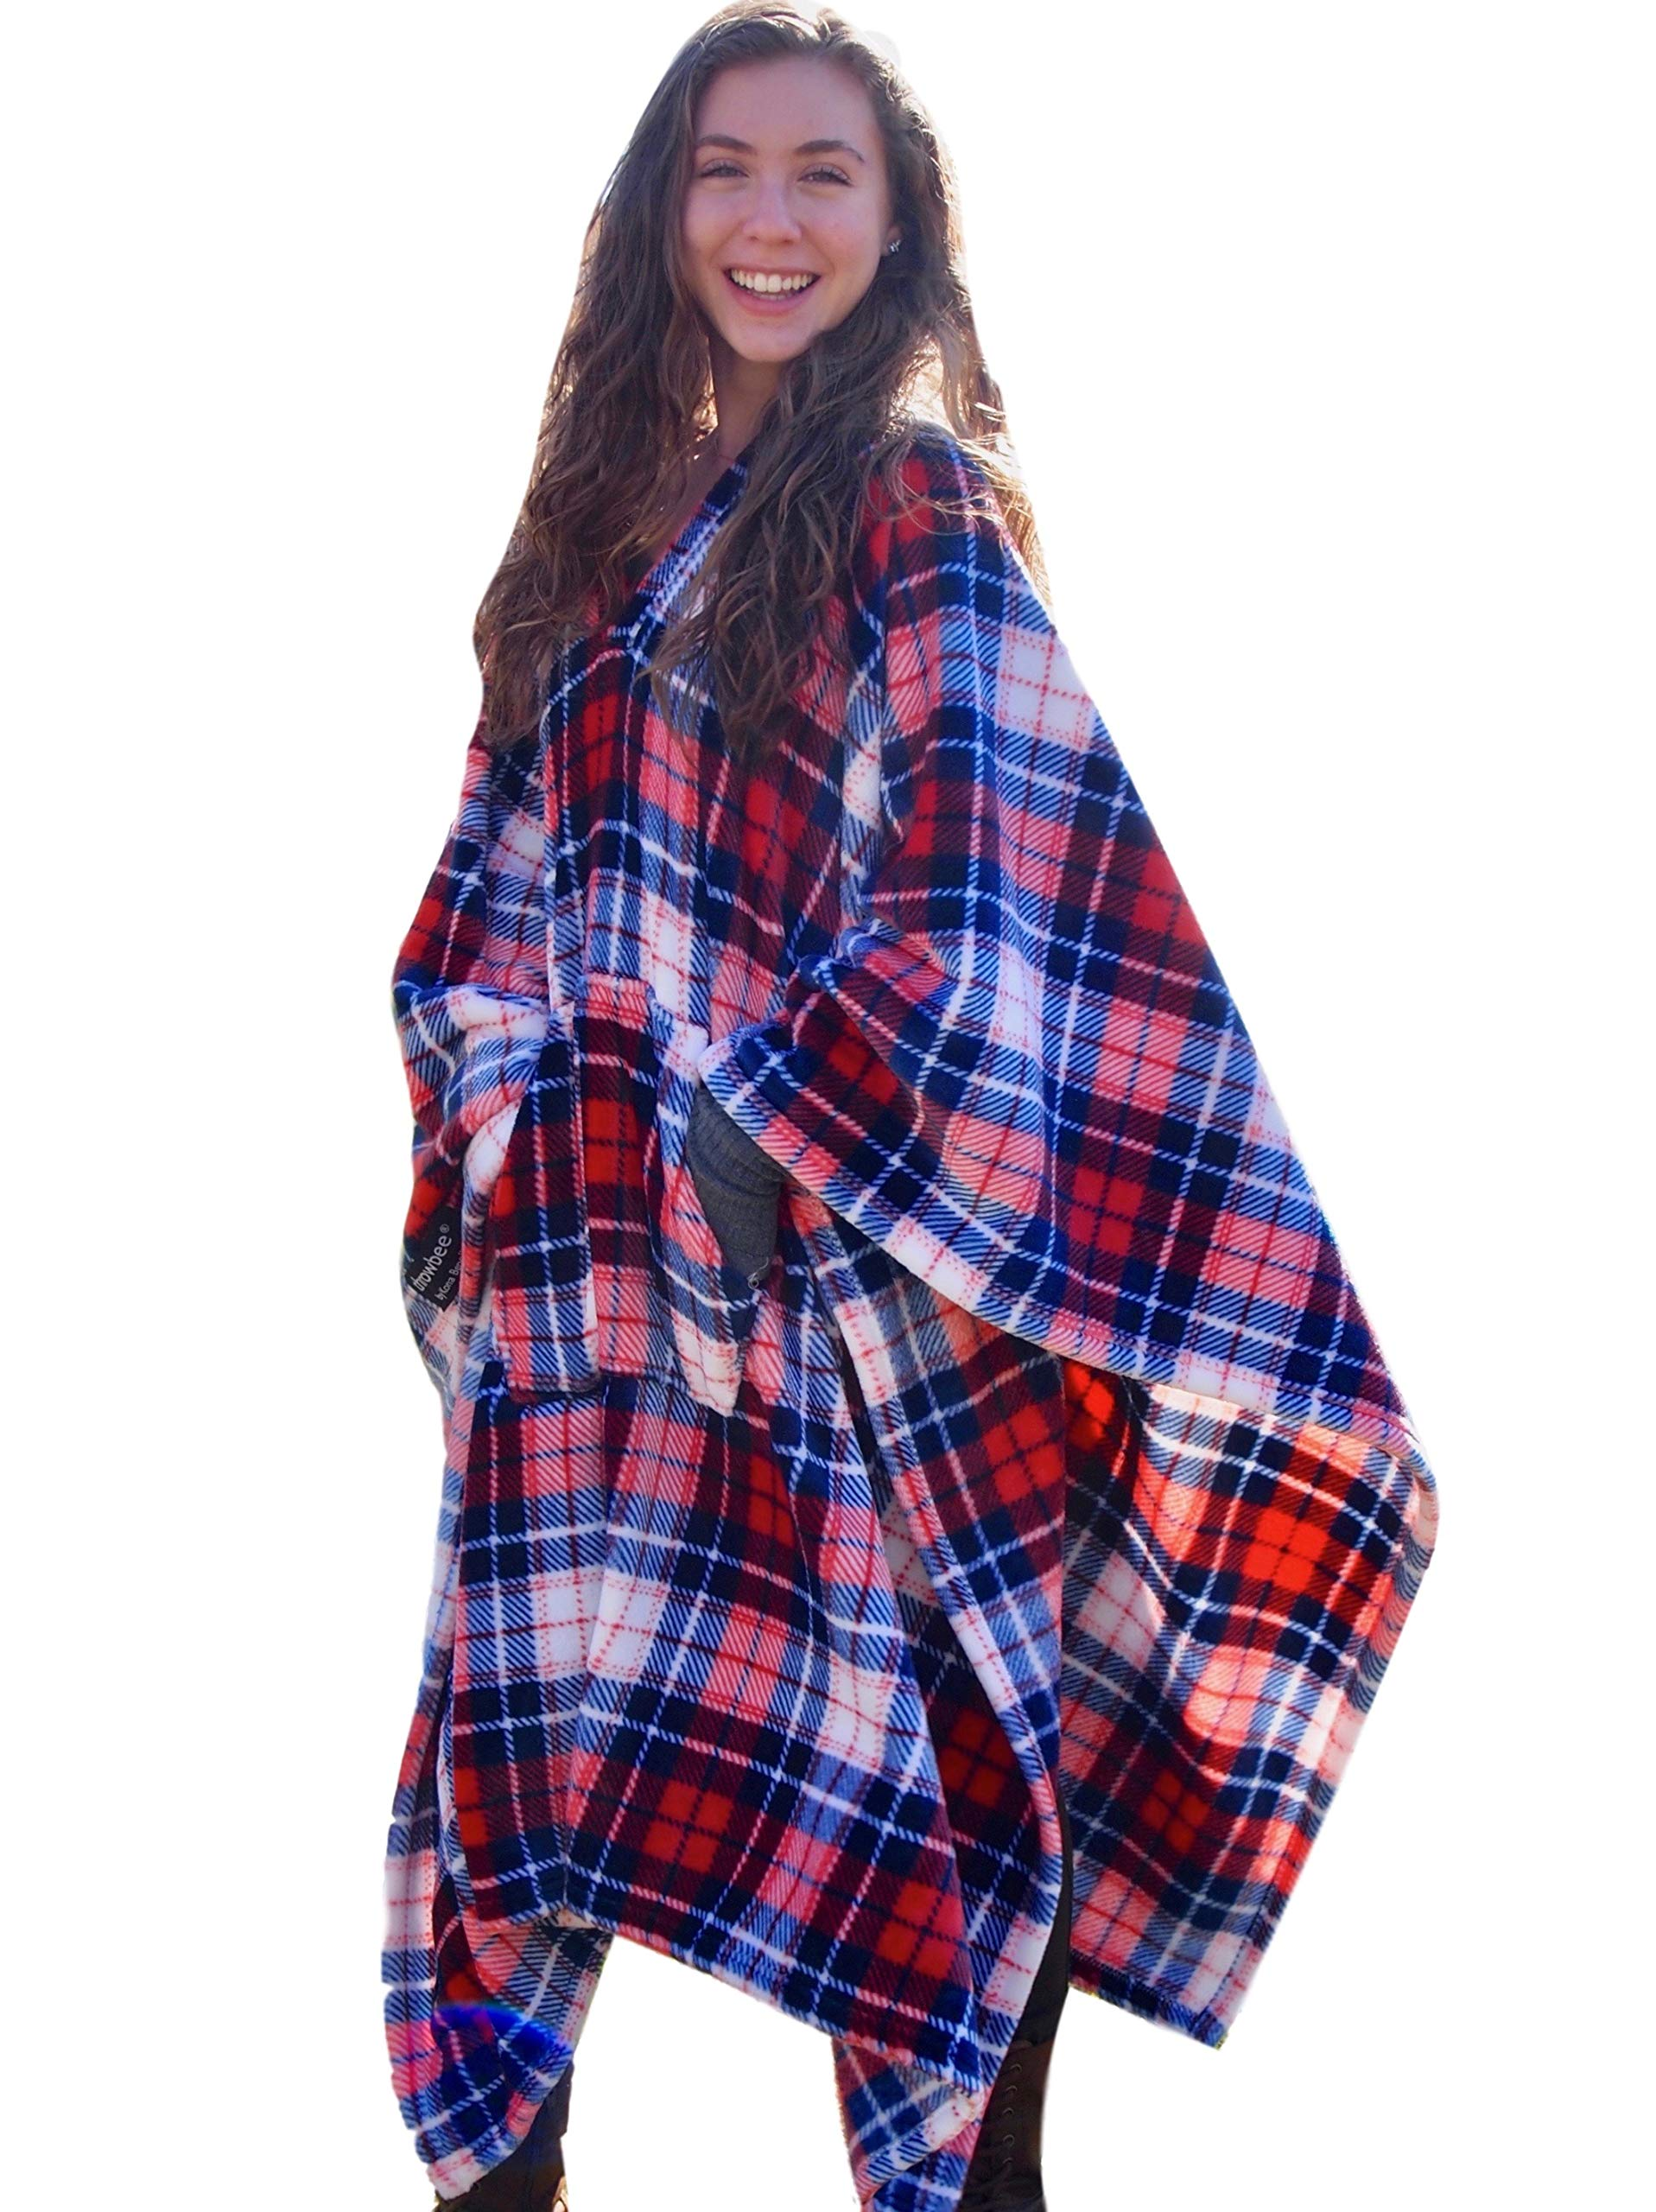 Original THROWBEE Blanket-Poncho UPSTATE PLAID red blue (Yay! NO SLEEVES) Best Wearable Blanket on the planet SOFT throw Indoors or Outdoors - adults men women kids